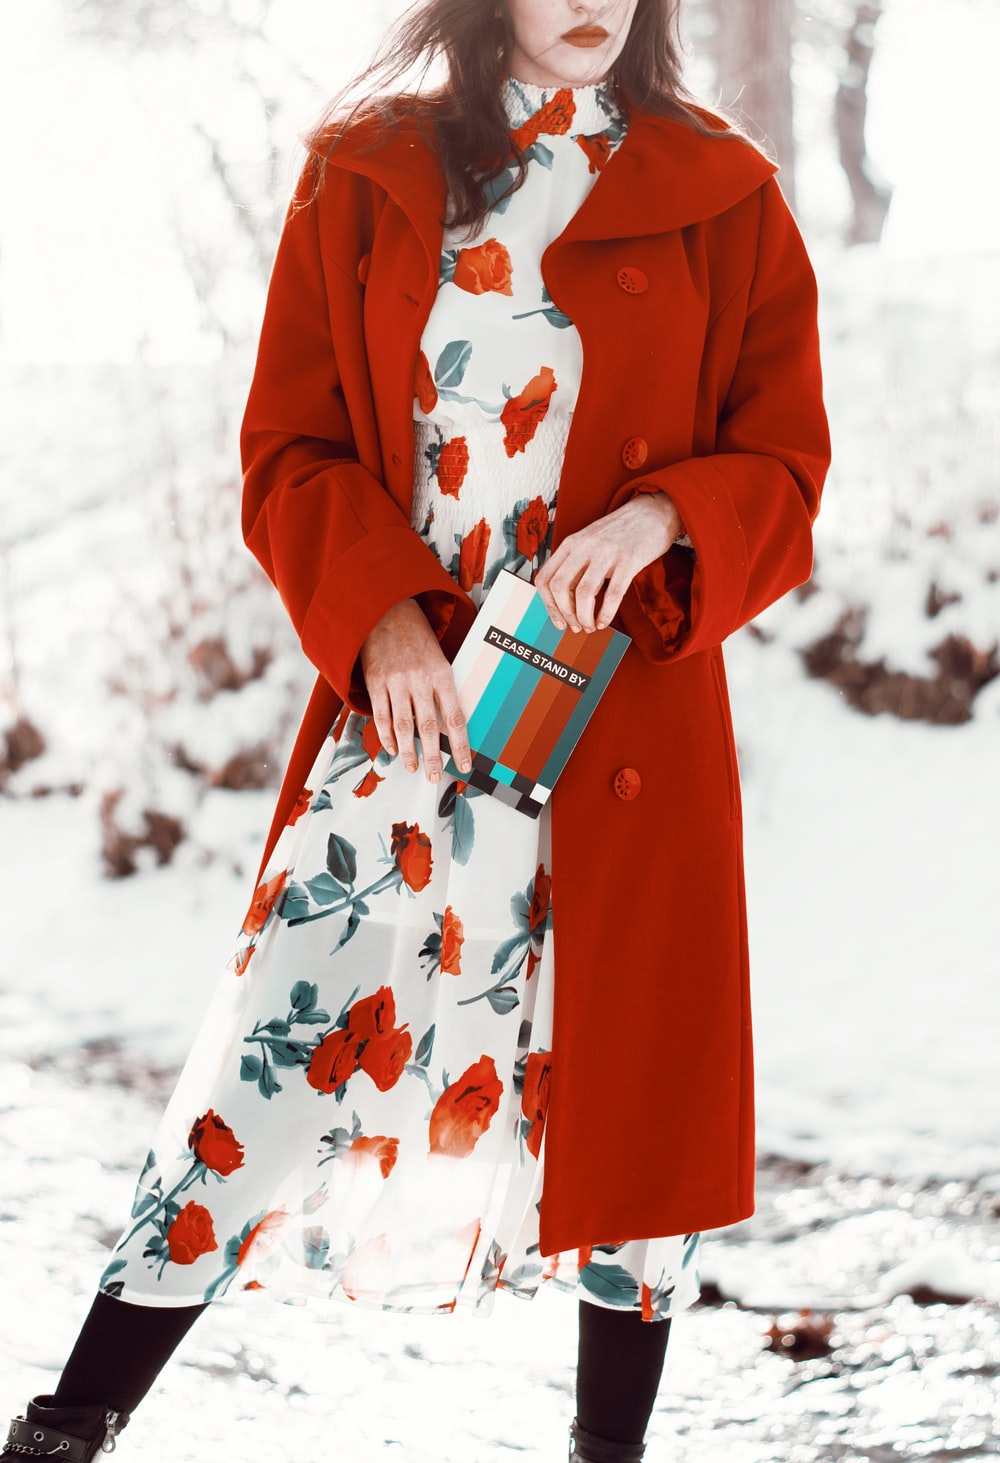 woman in red coat holding white ceramic mug